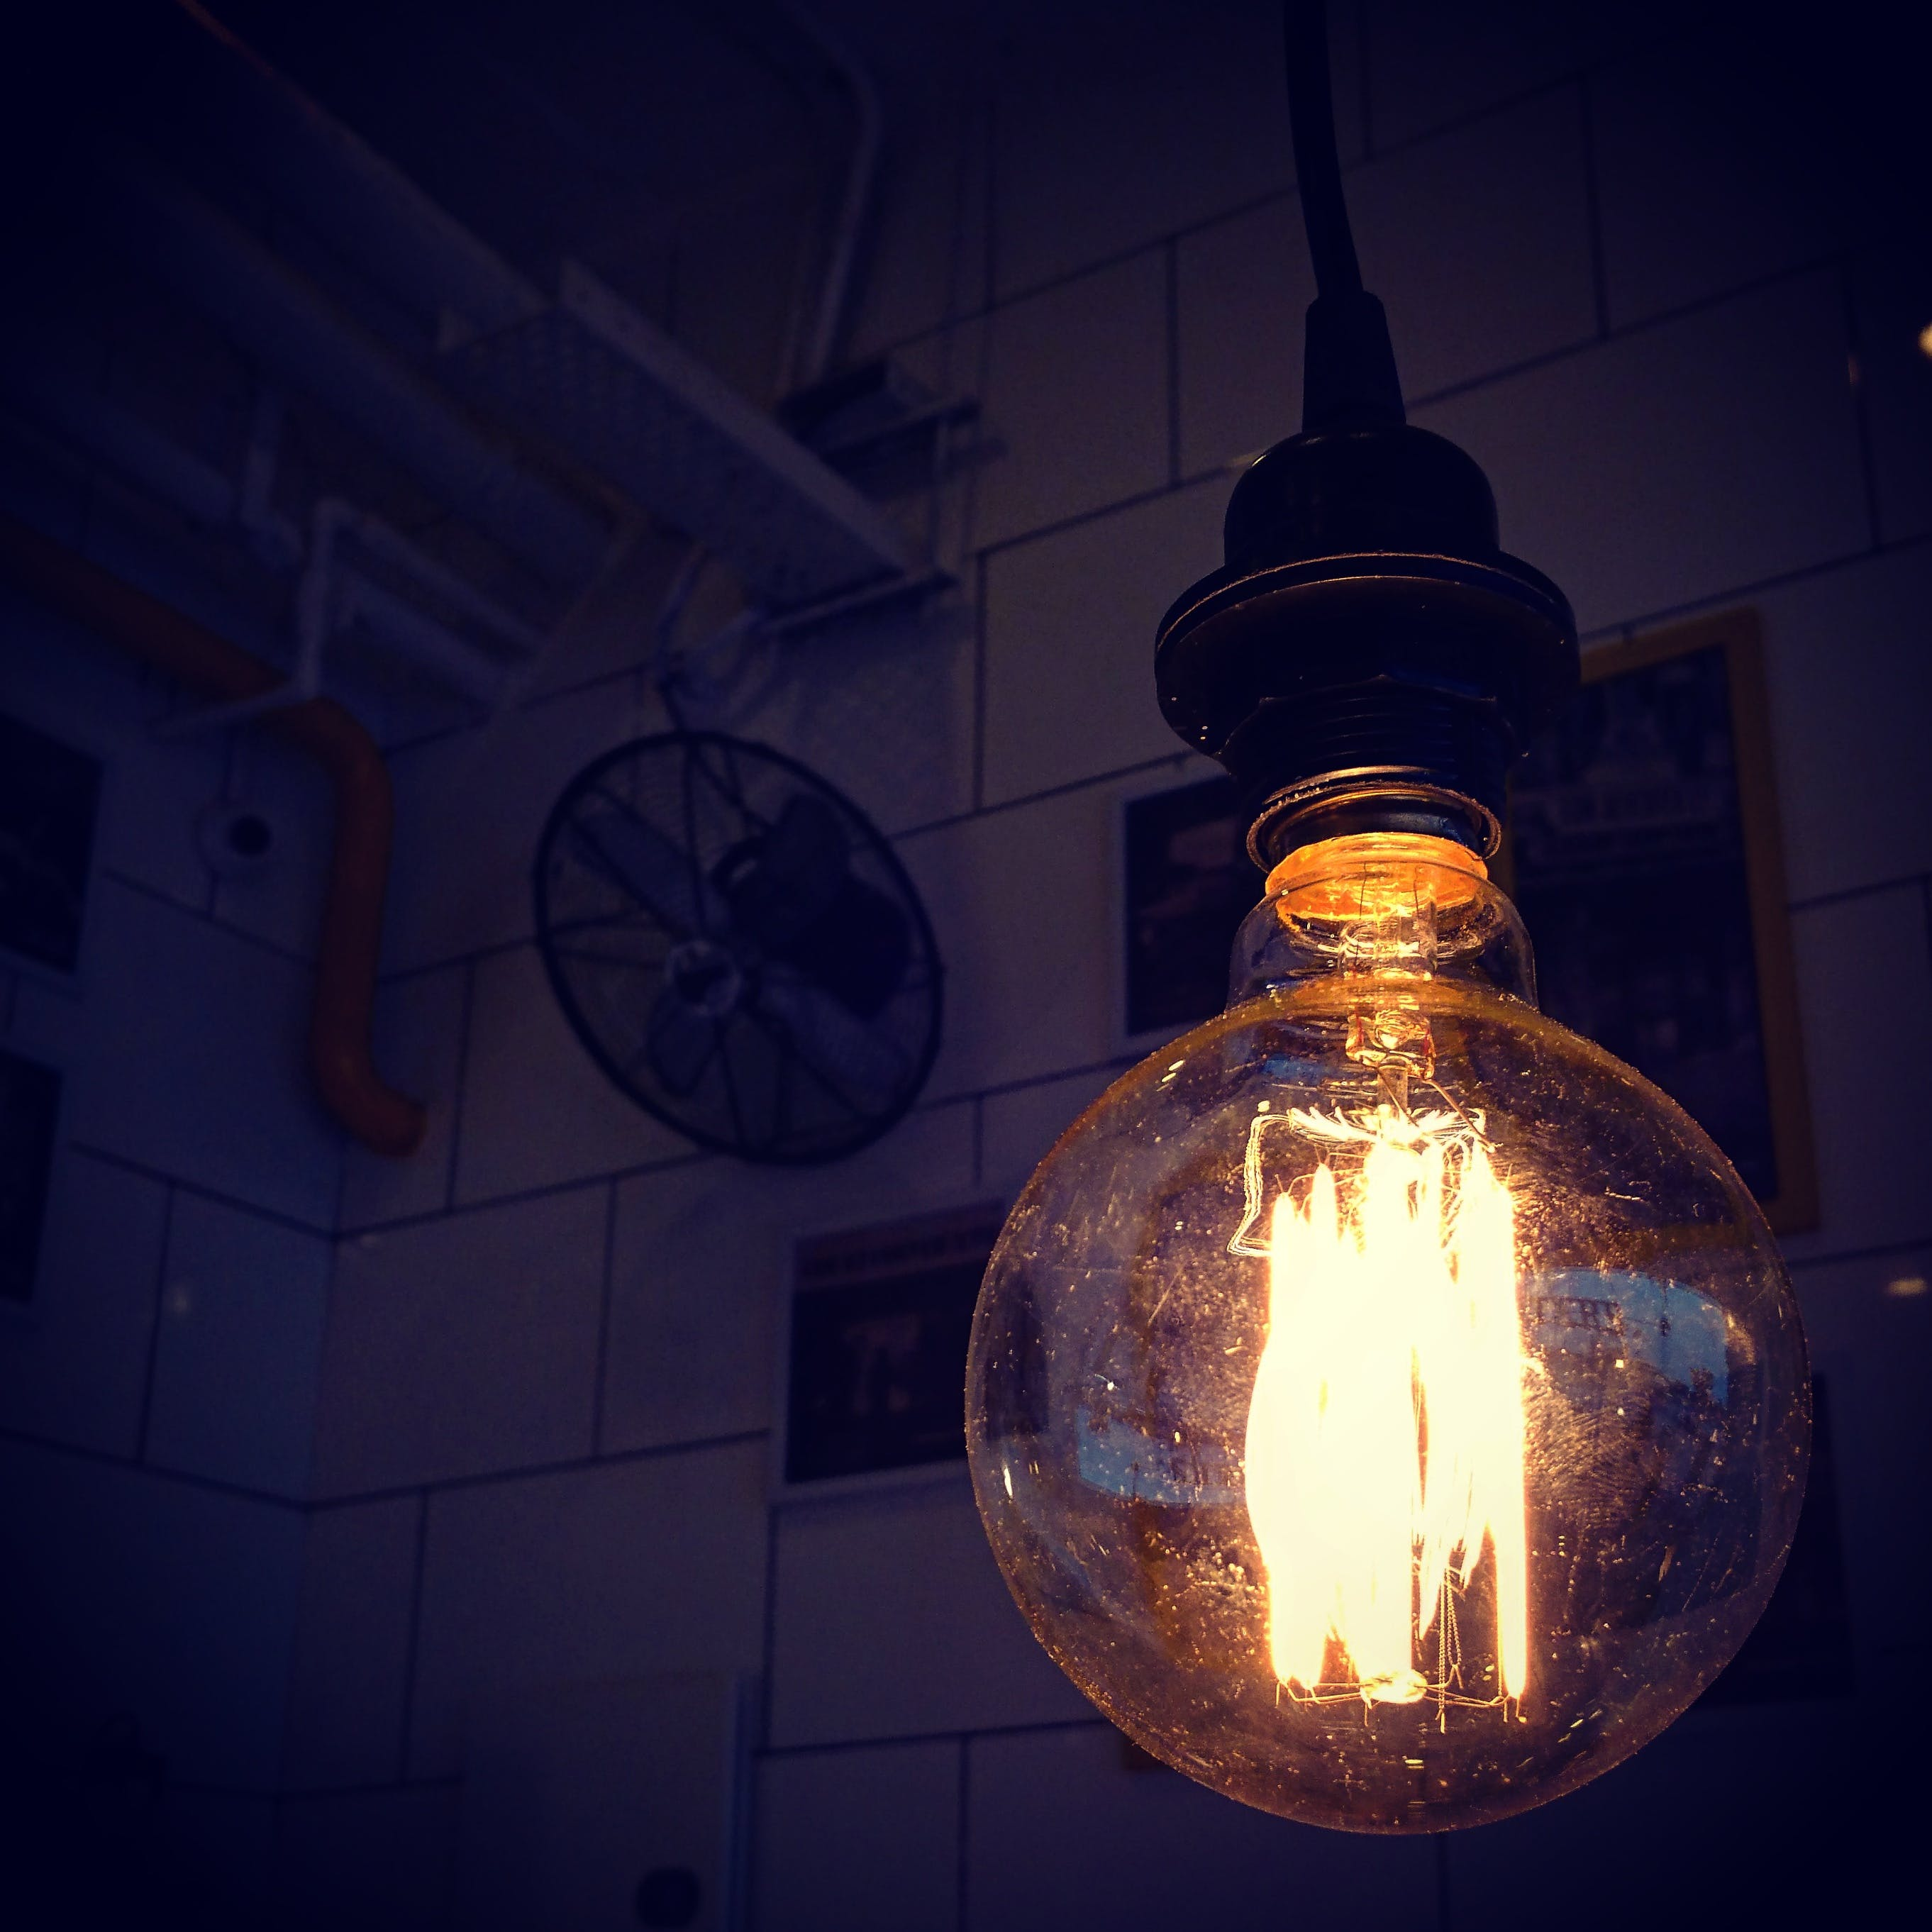 ball-shaped, bright, bulb